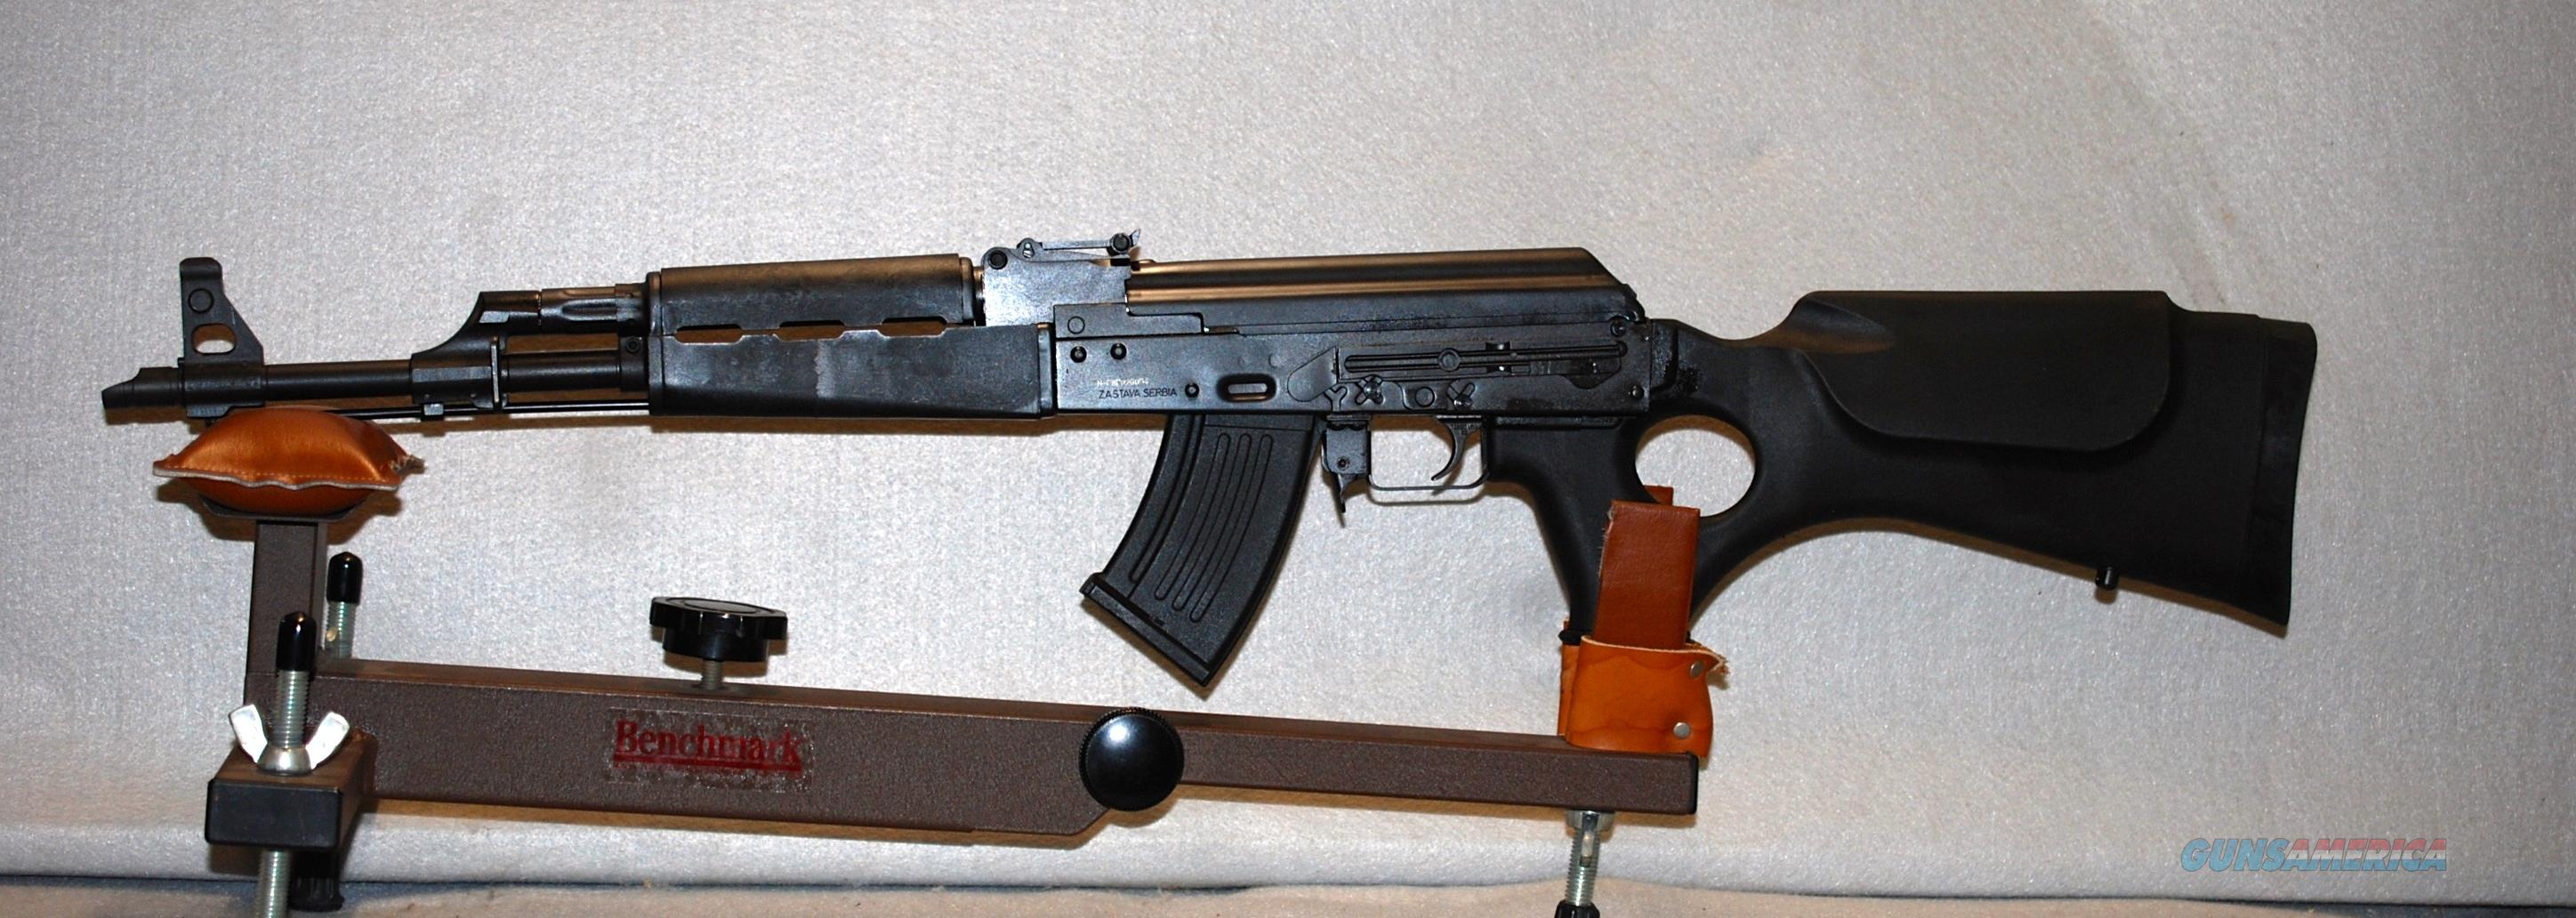 Zastava, AK47, 762x39  Guns > Rifles > AK-47 Rifles (and copies) > Full Stock